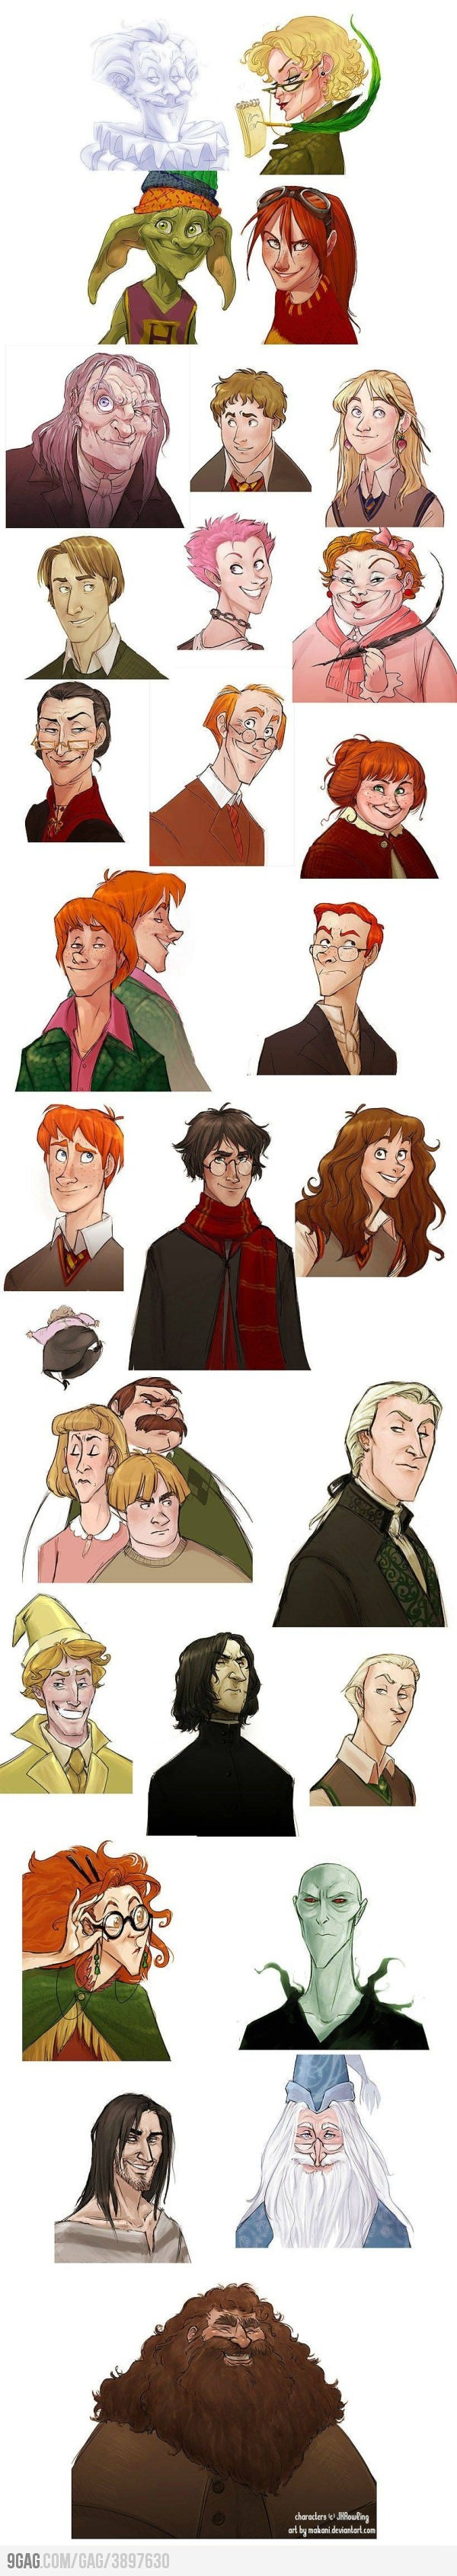 Makani's 'widget' Harry Potter characters (originally from acciobrain.ligermagic.com)